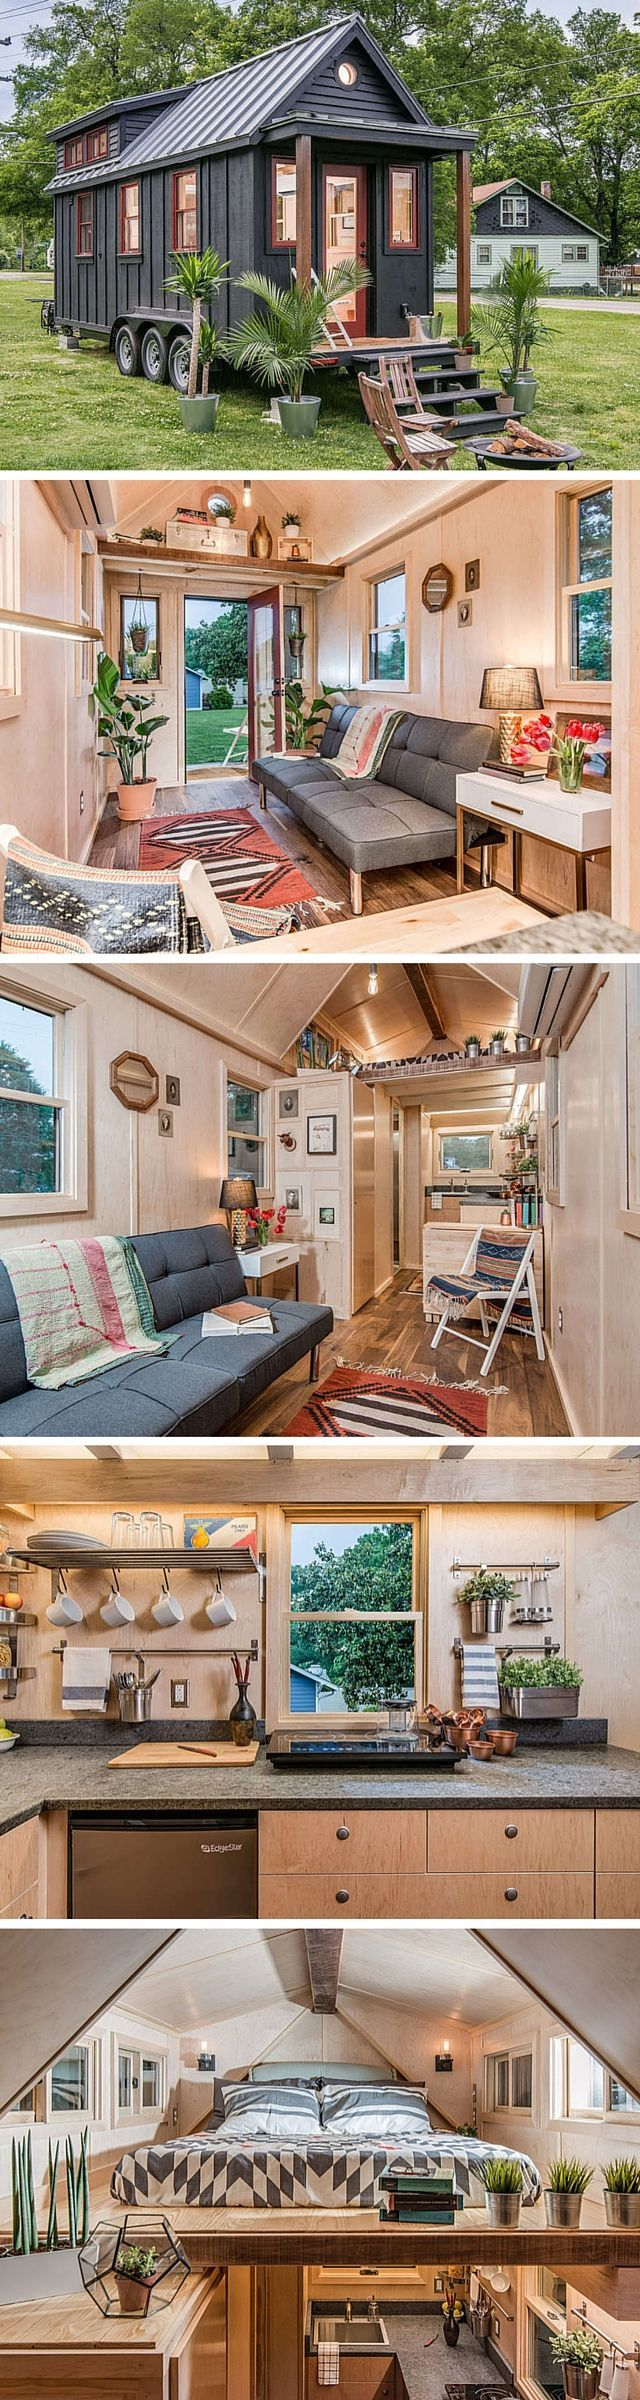 The Riverside tiny house by New Frontier Tiny Homes. A 246 sq ft home with Scand